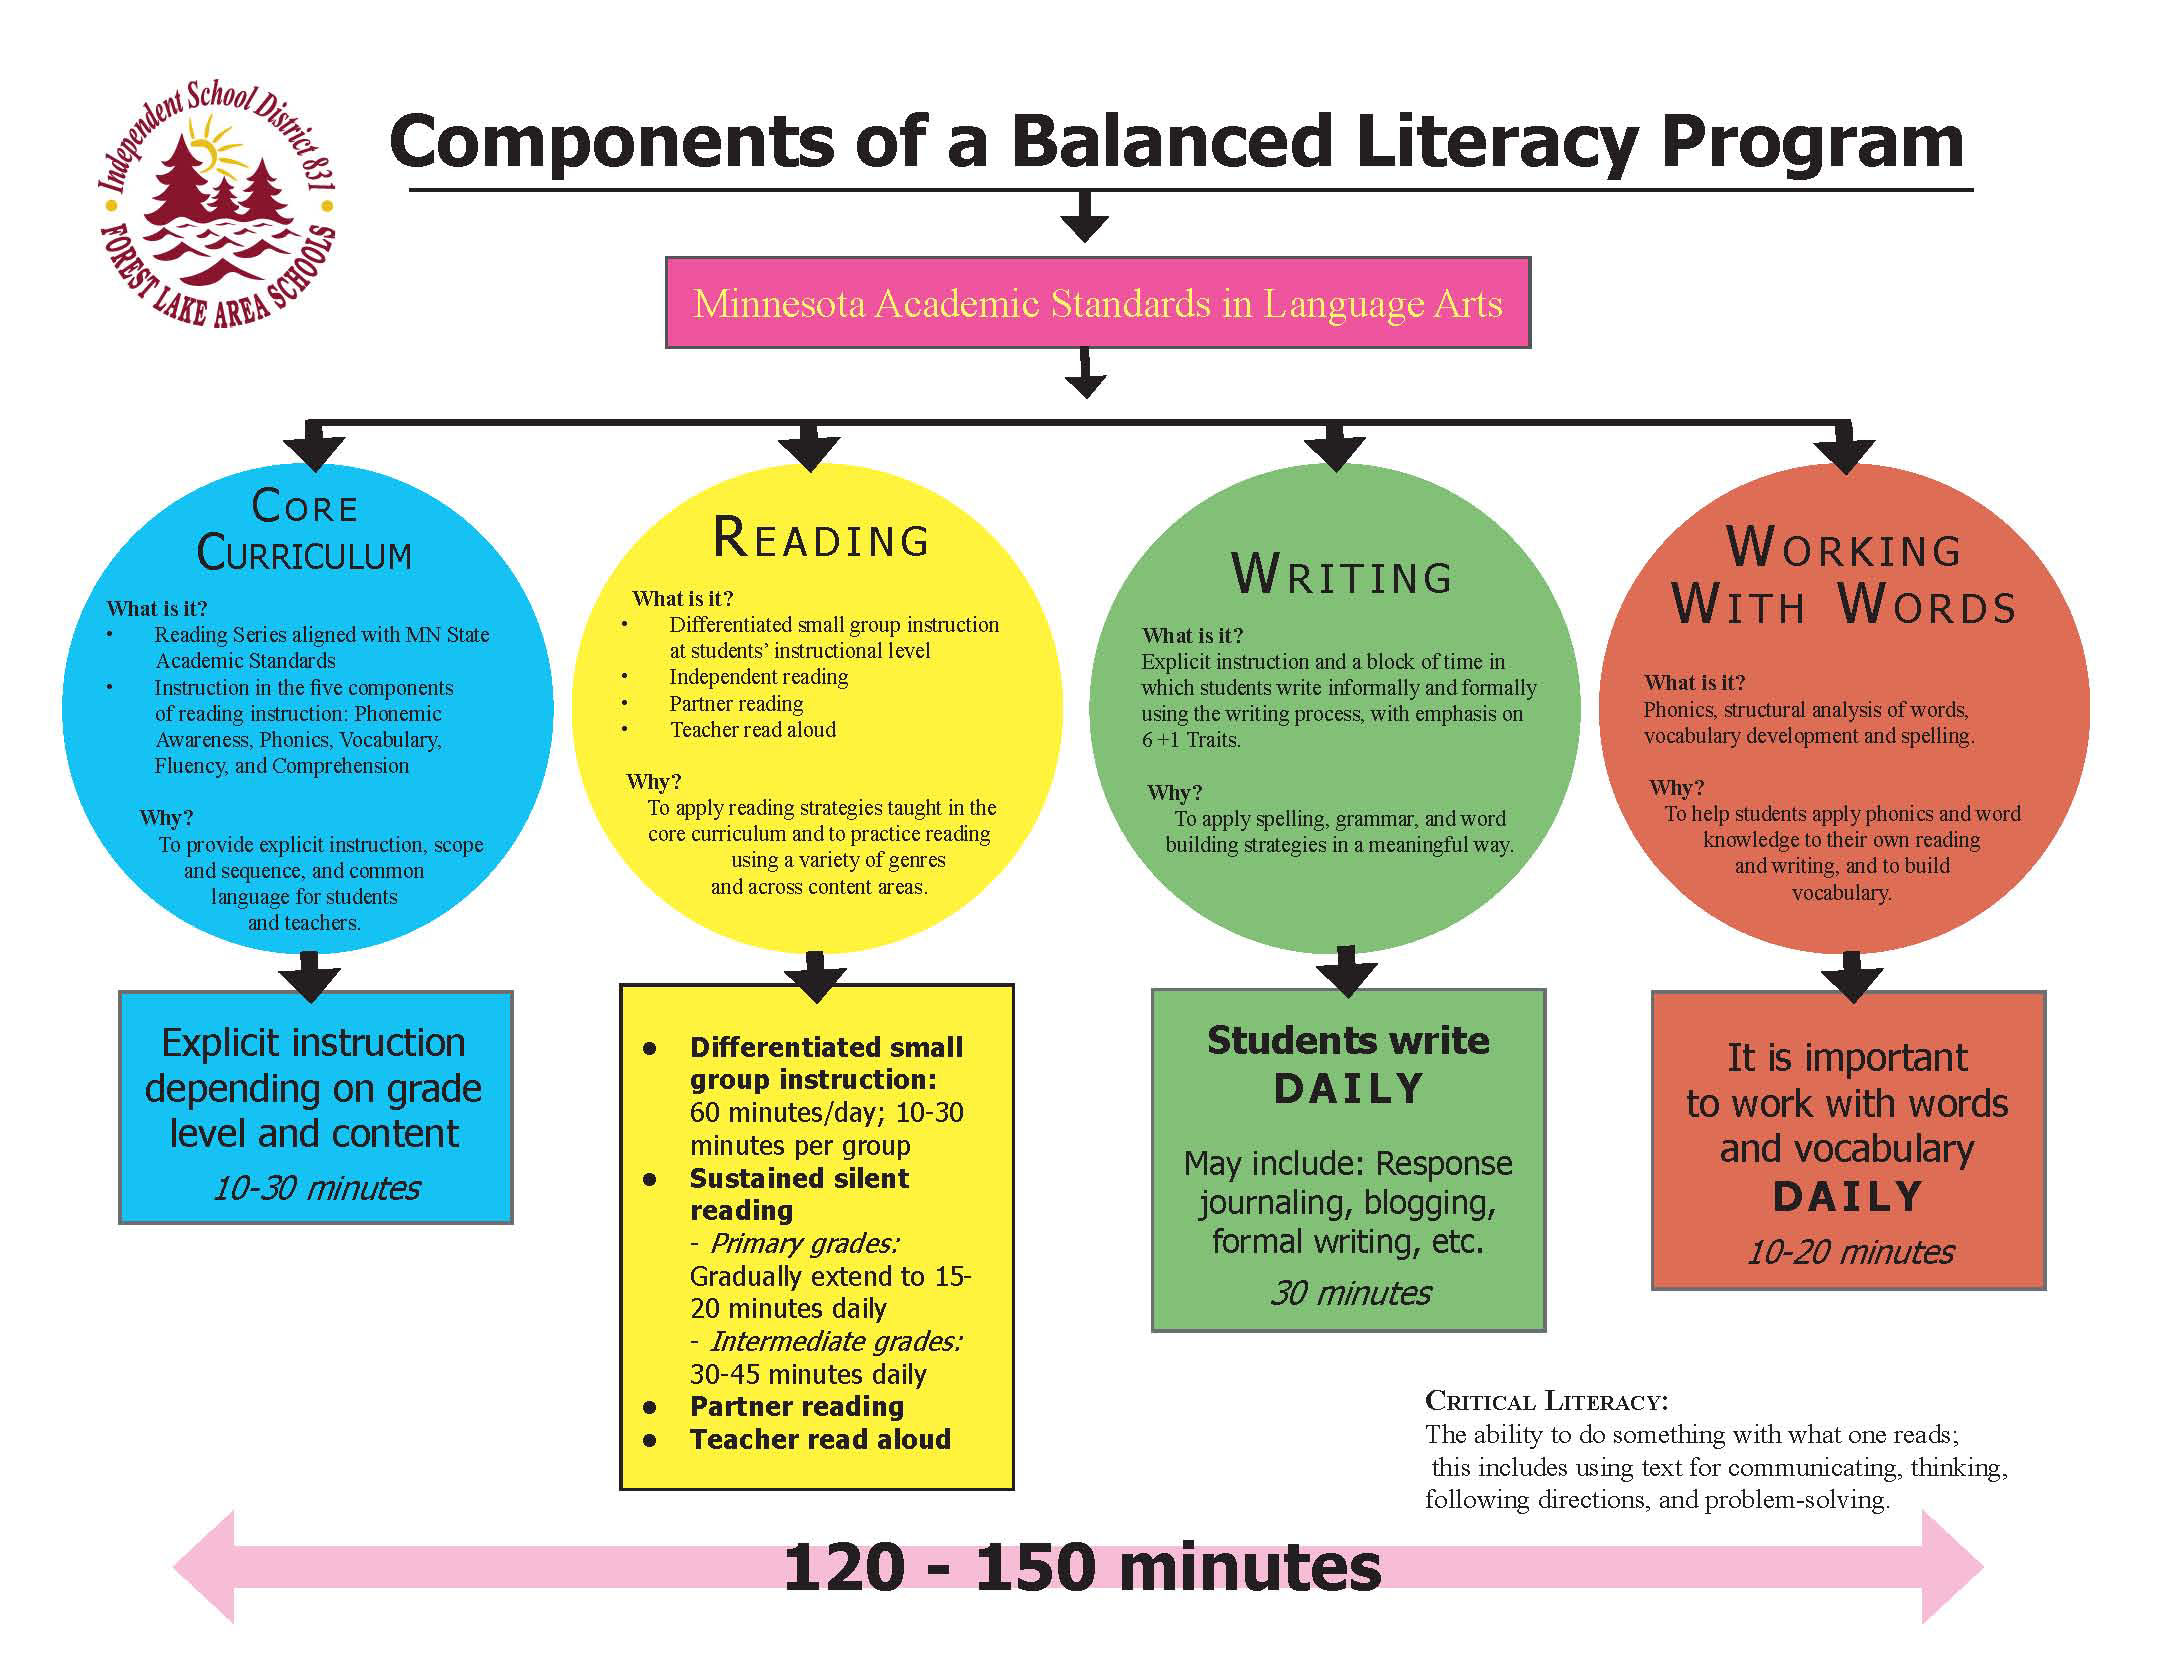 28 Best Middle School Balanced Literacy images | School ...